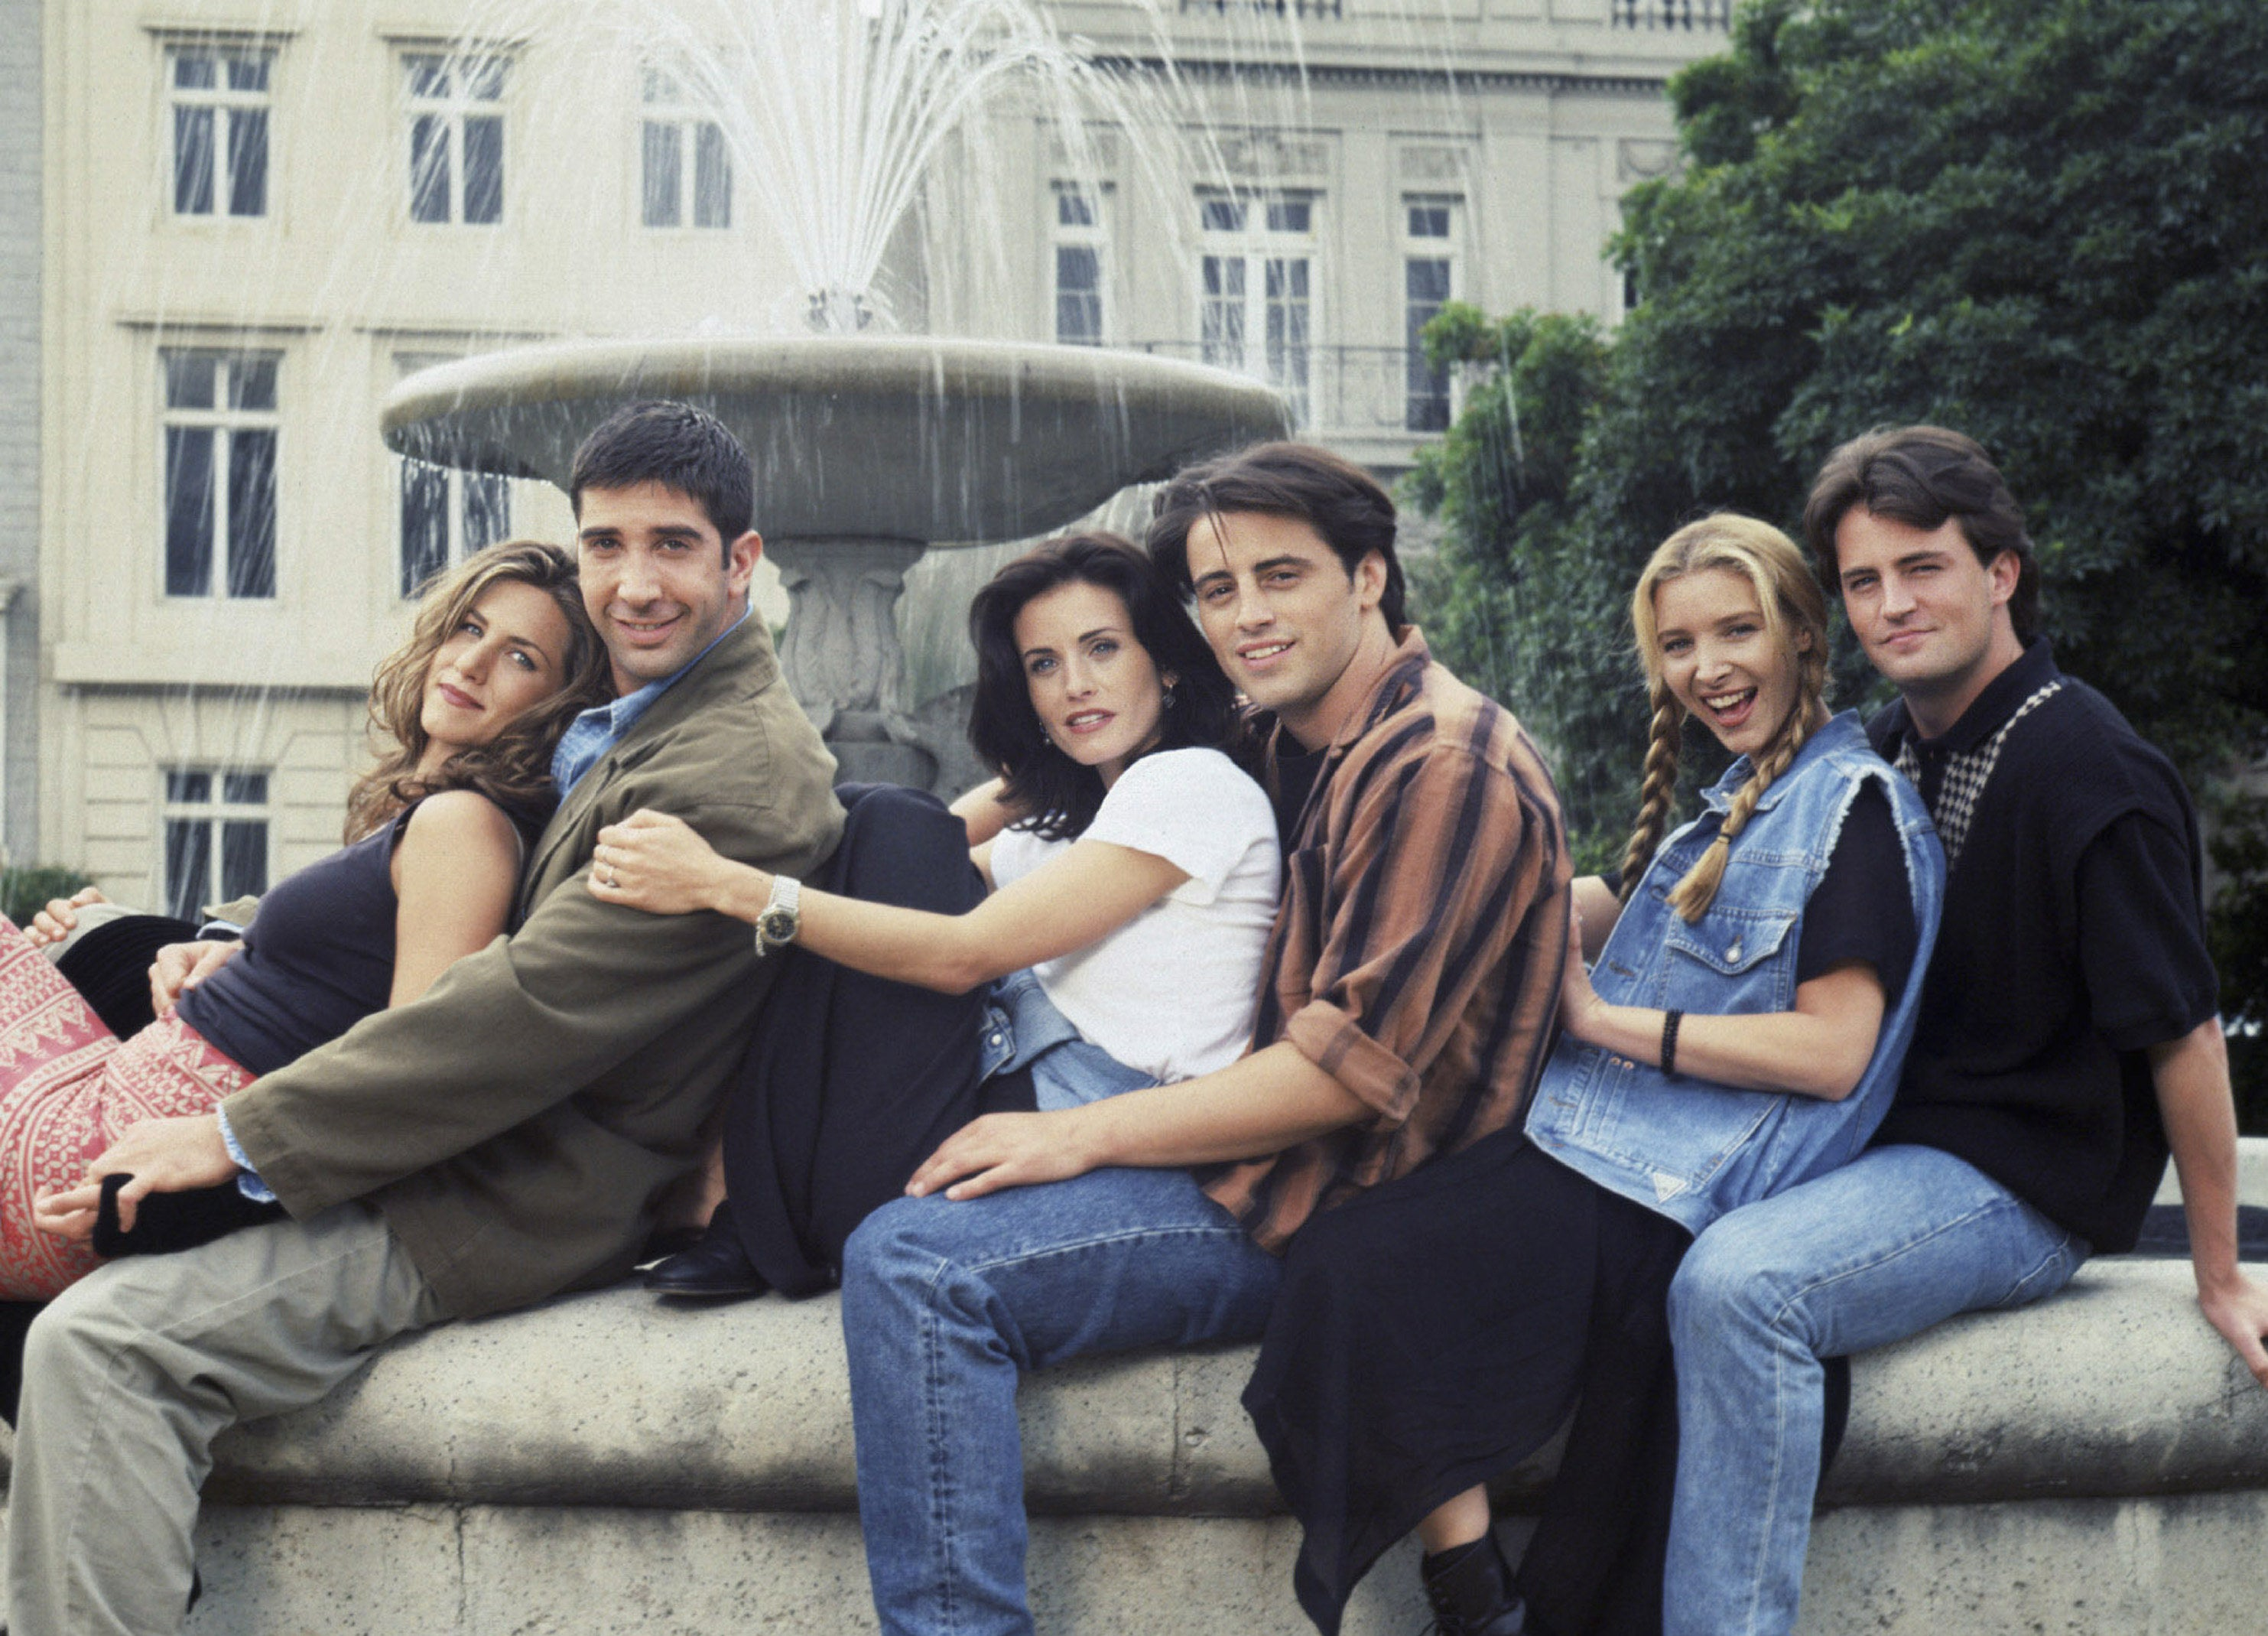 The Friends cast sit together on the edge of a fountain